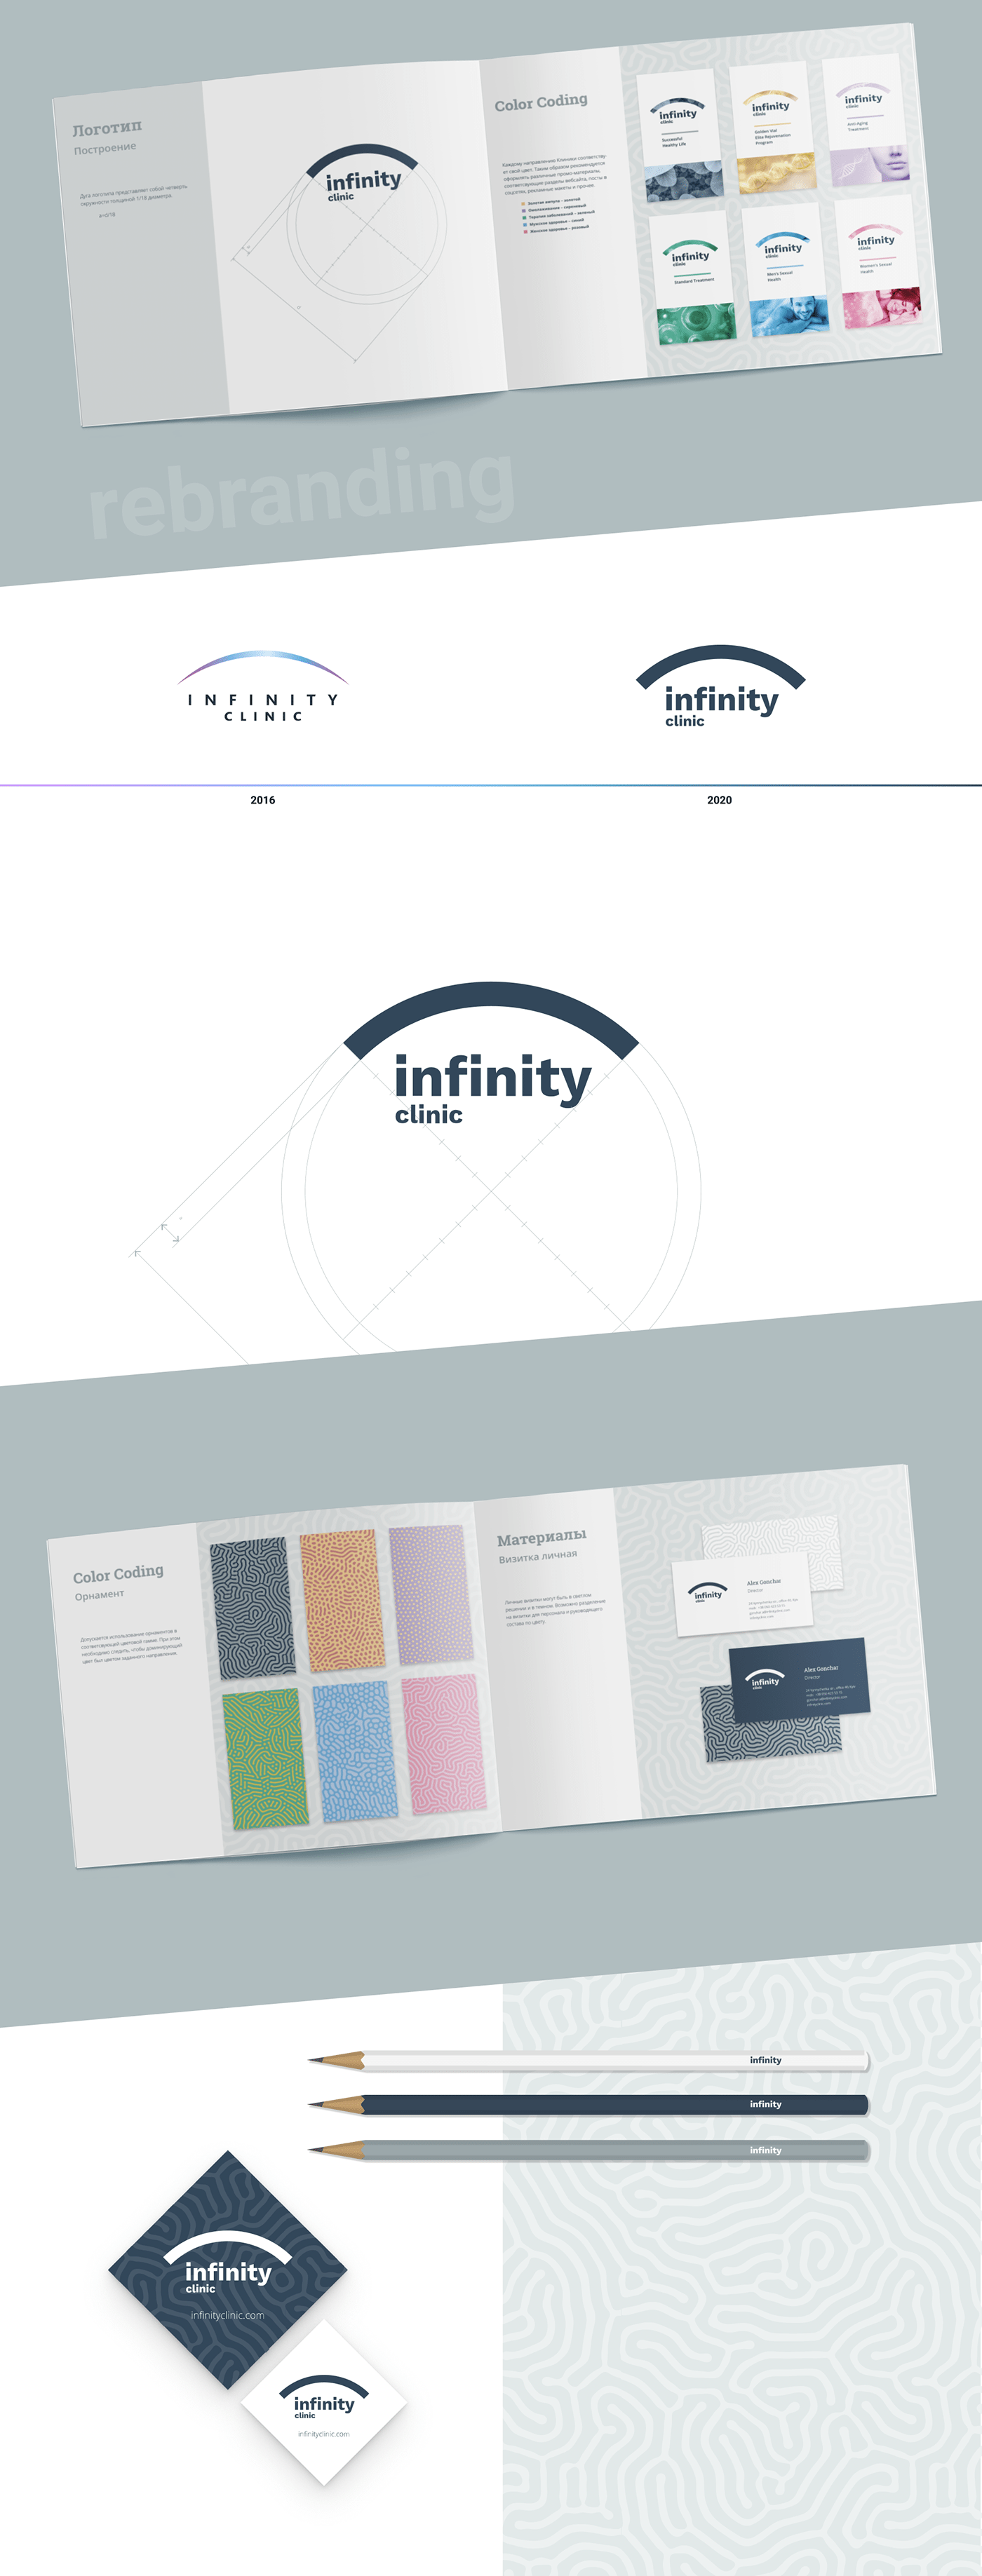 Identity redesign for Infinity Clinic.